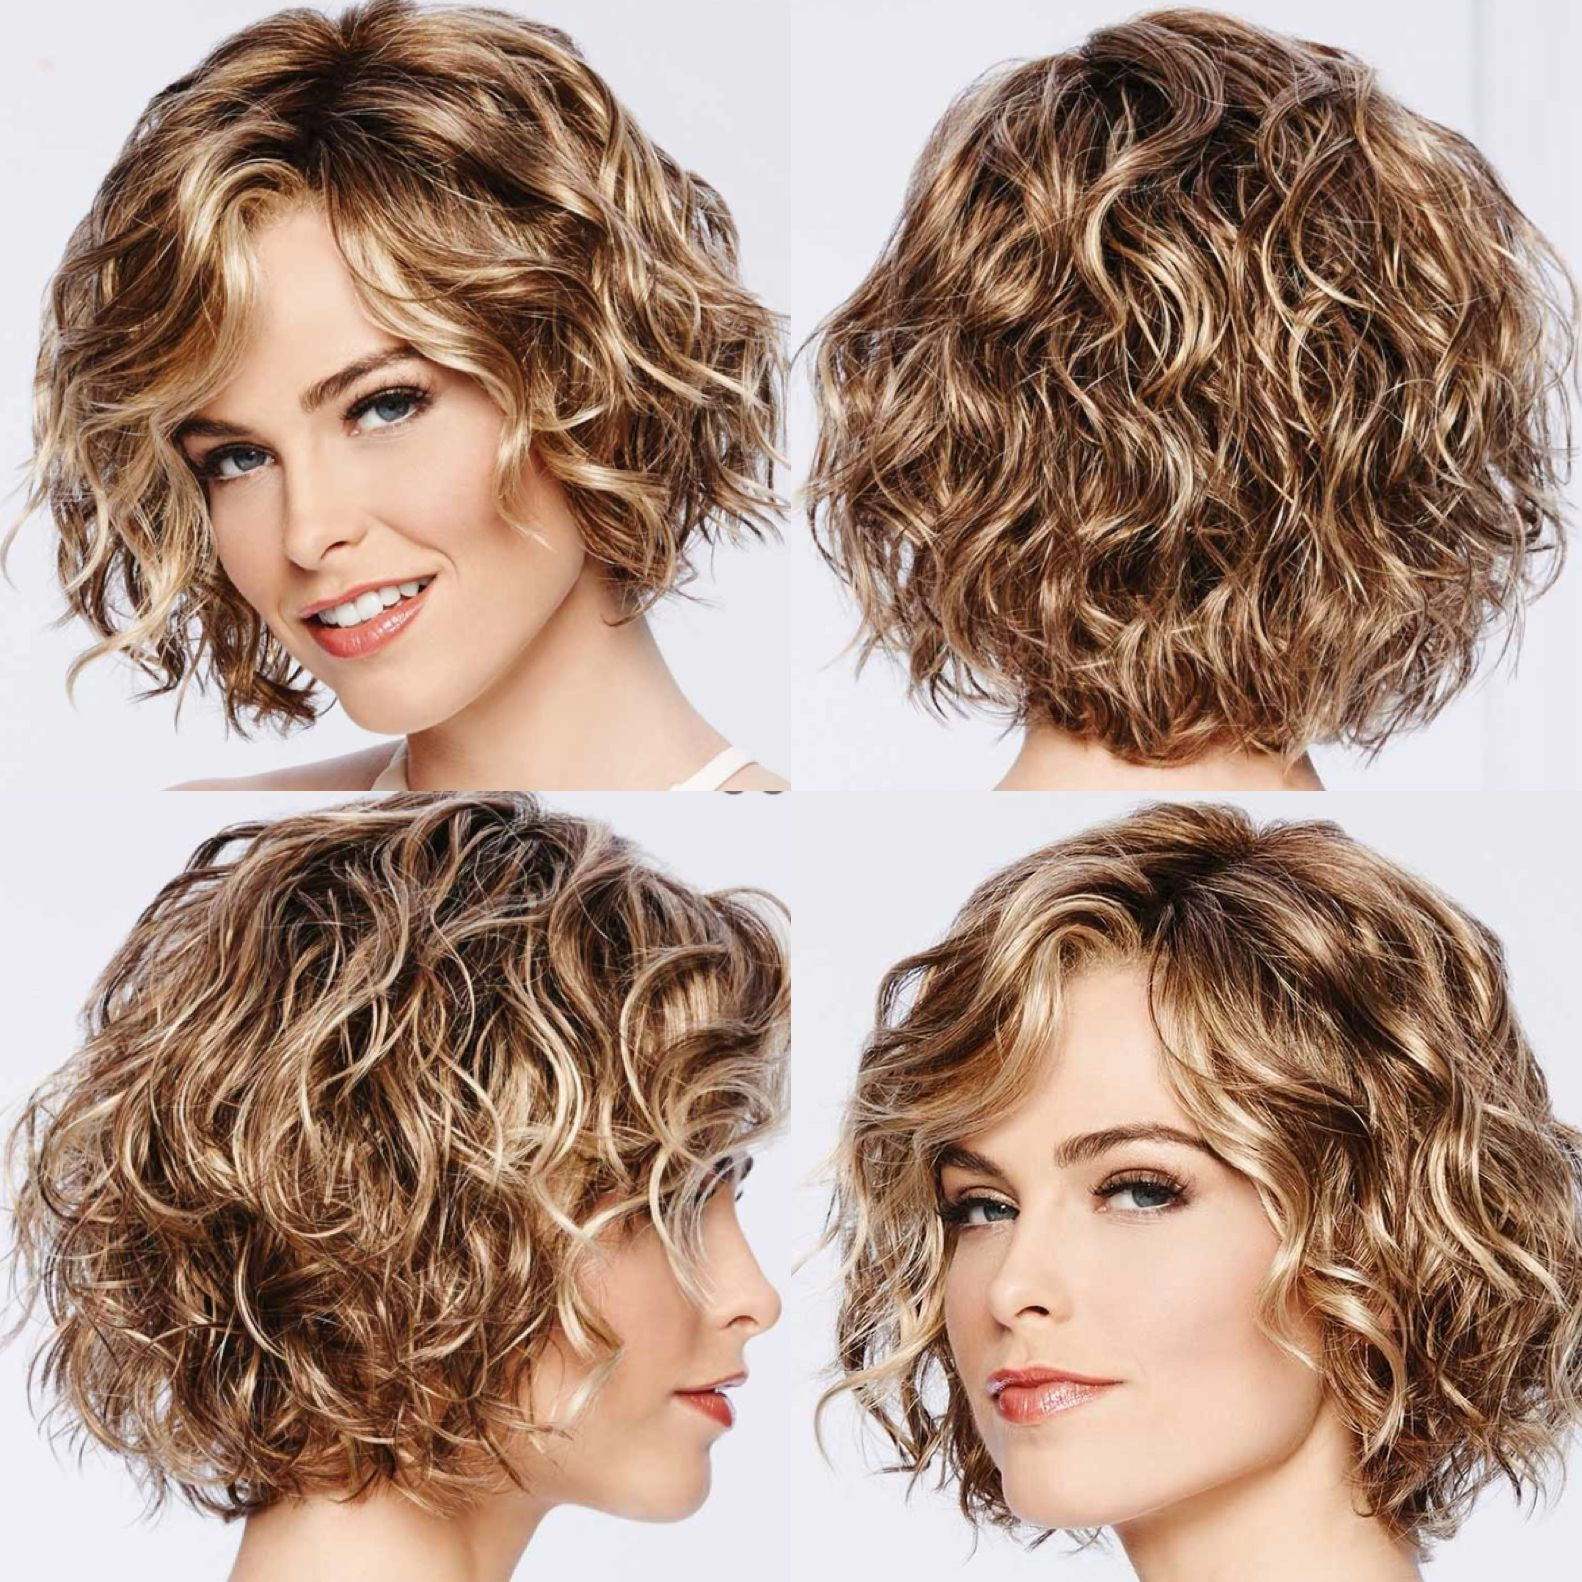 Perms Style Avedaibw Short Permed Hair Medium Hair Styles Haircuts For Fine Hair